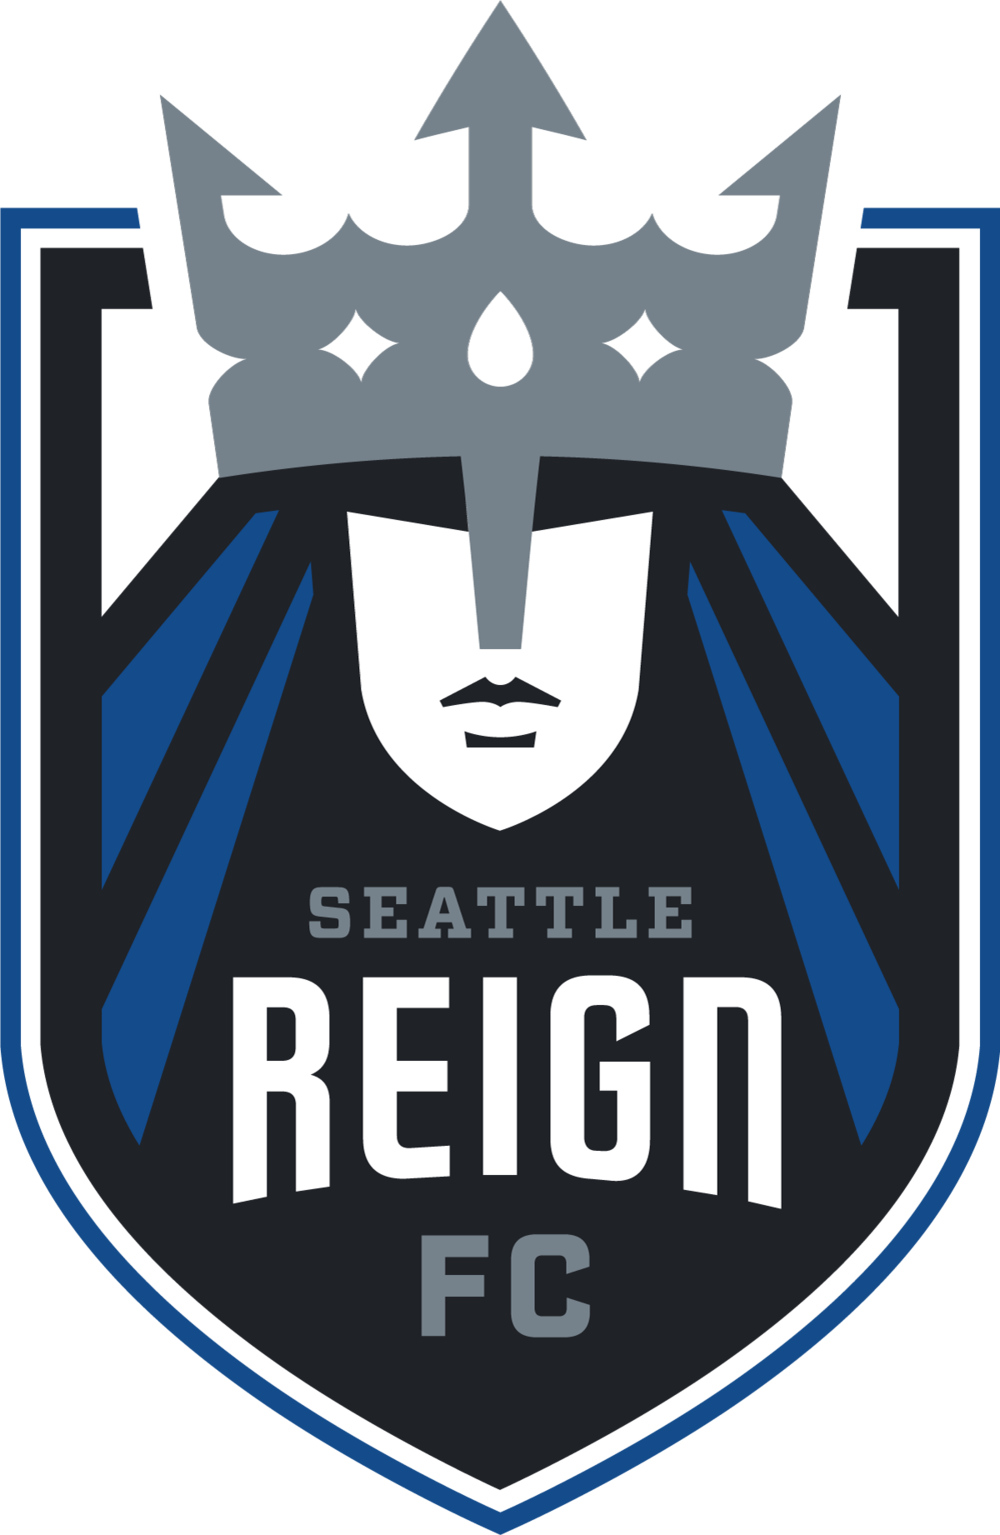 Seattle_Reign_FC.png